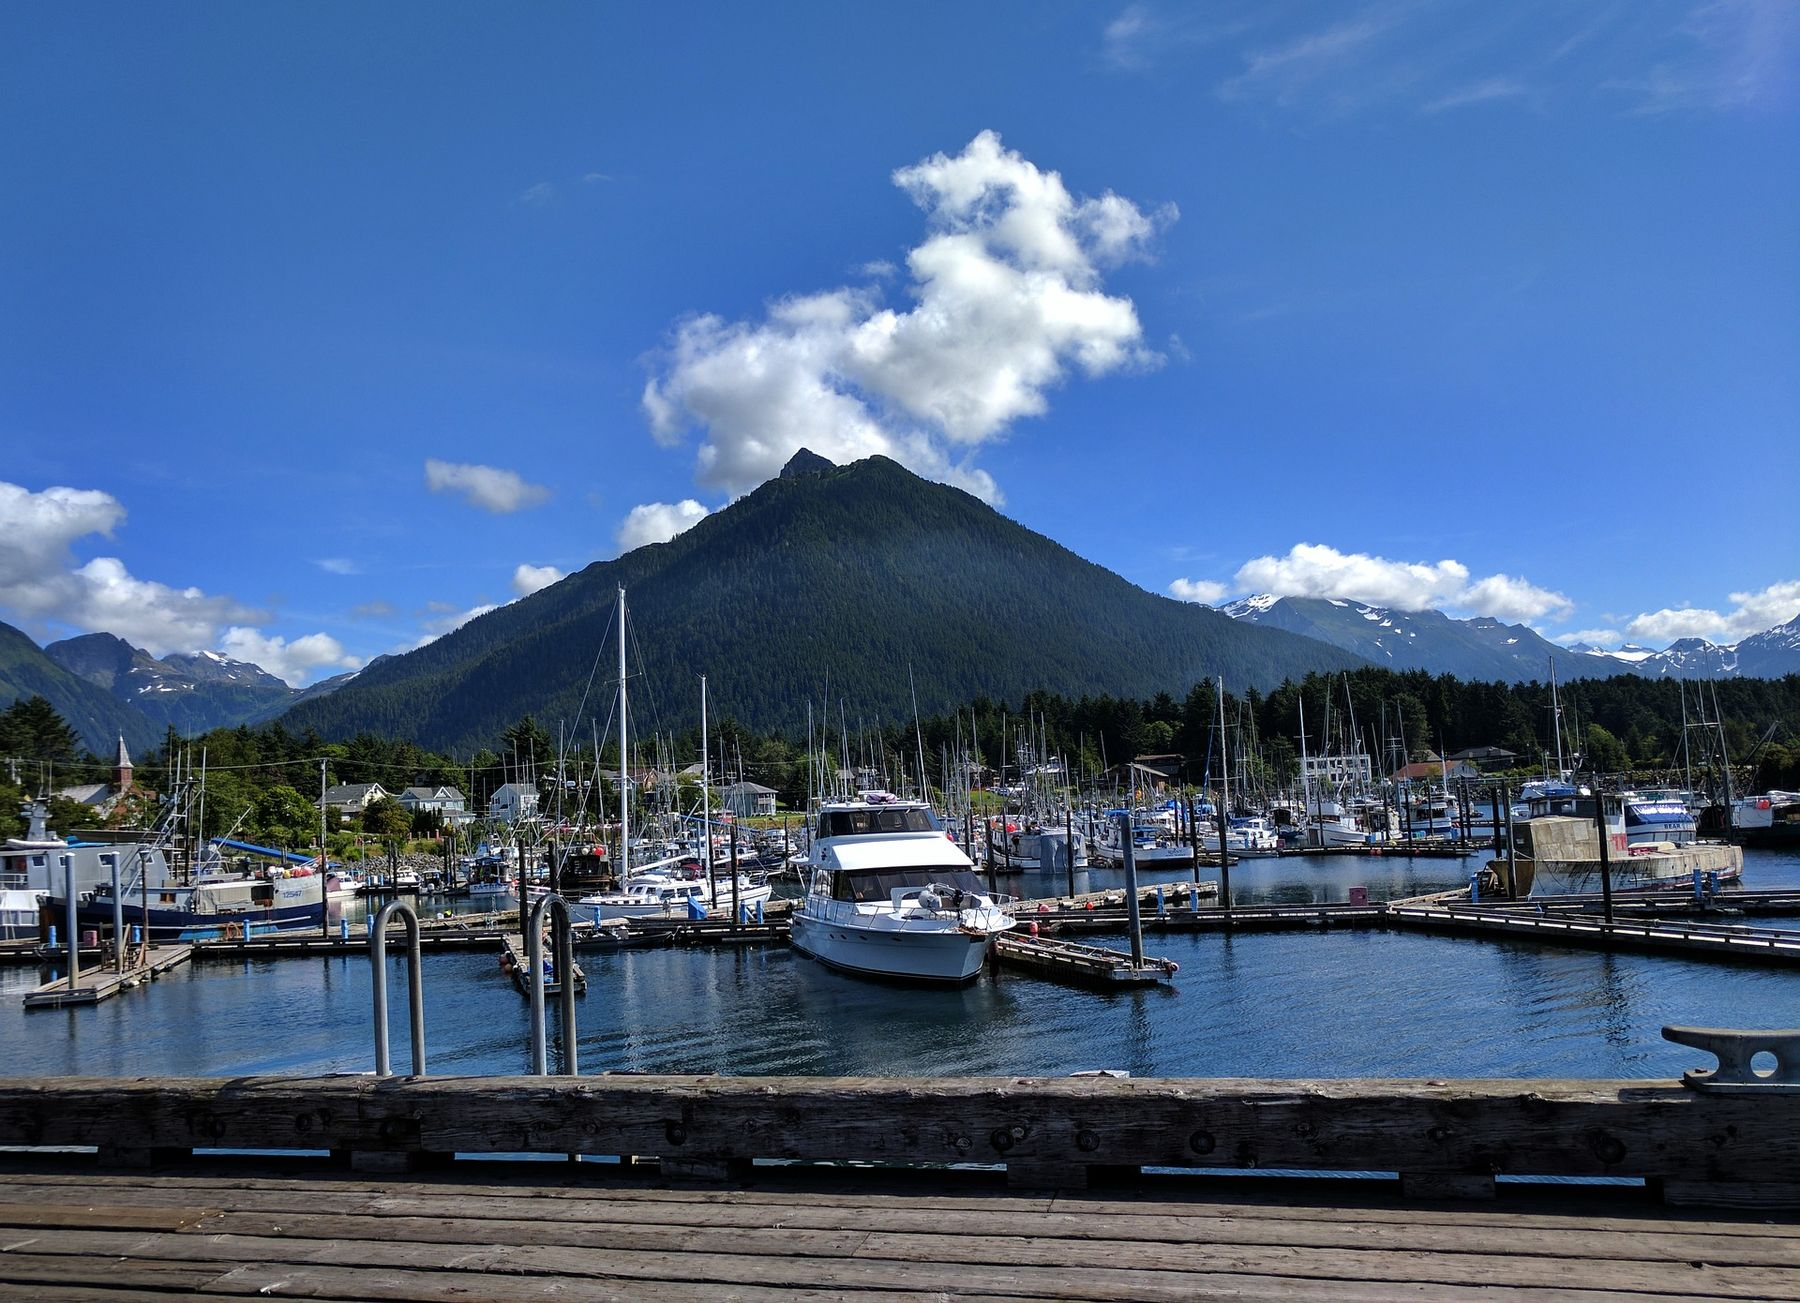 Boats at Crescent Harbor in Sitka, Alaska with Mt Verstovia in the background